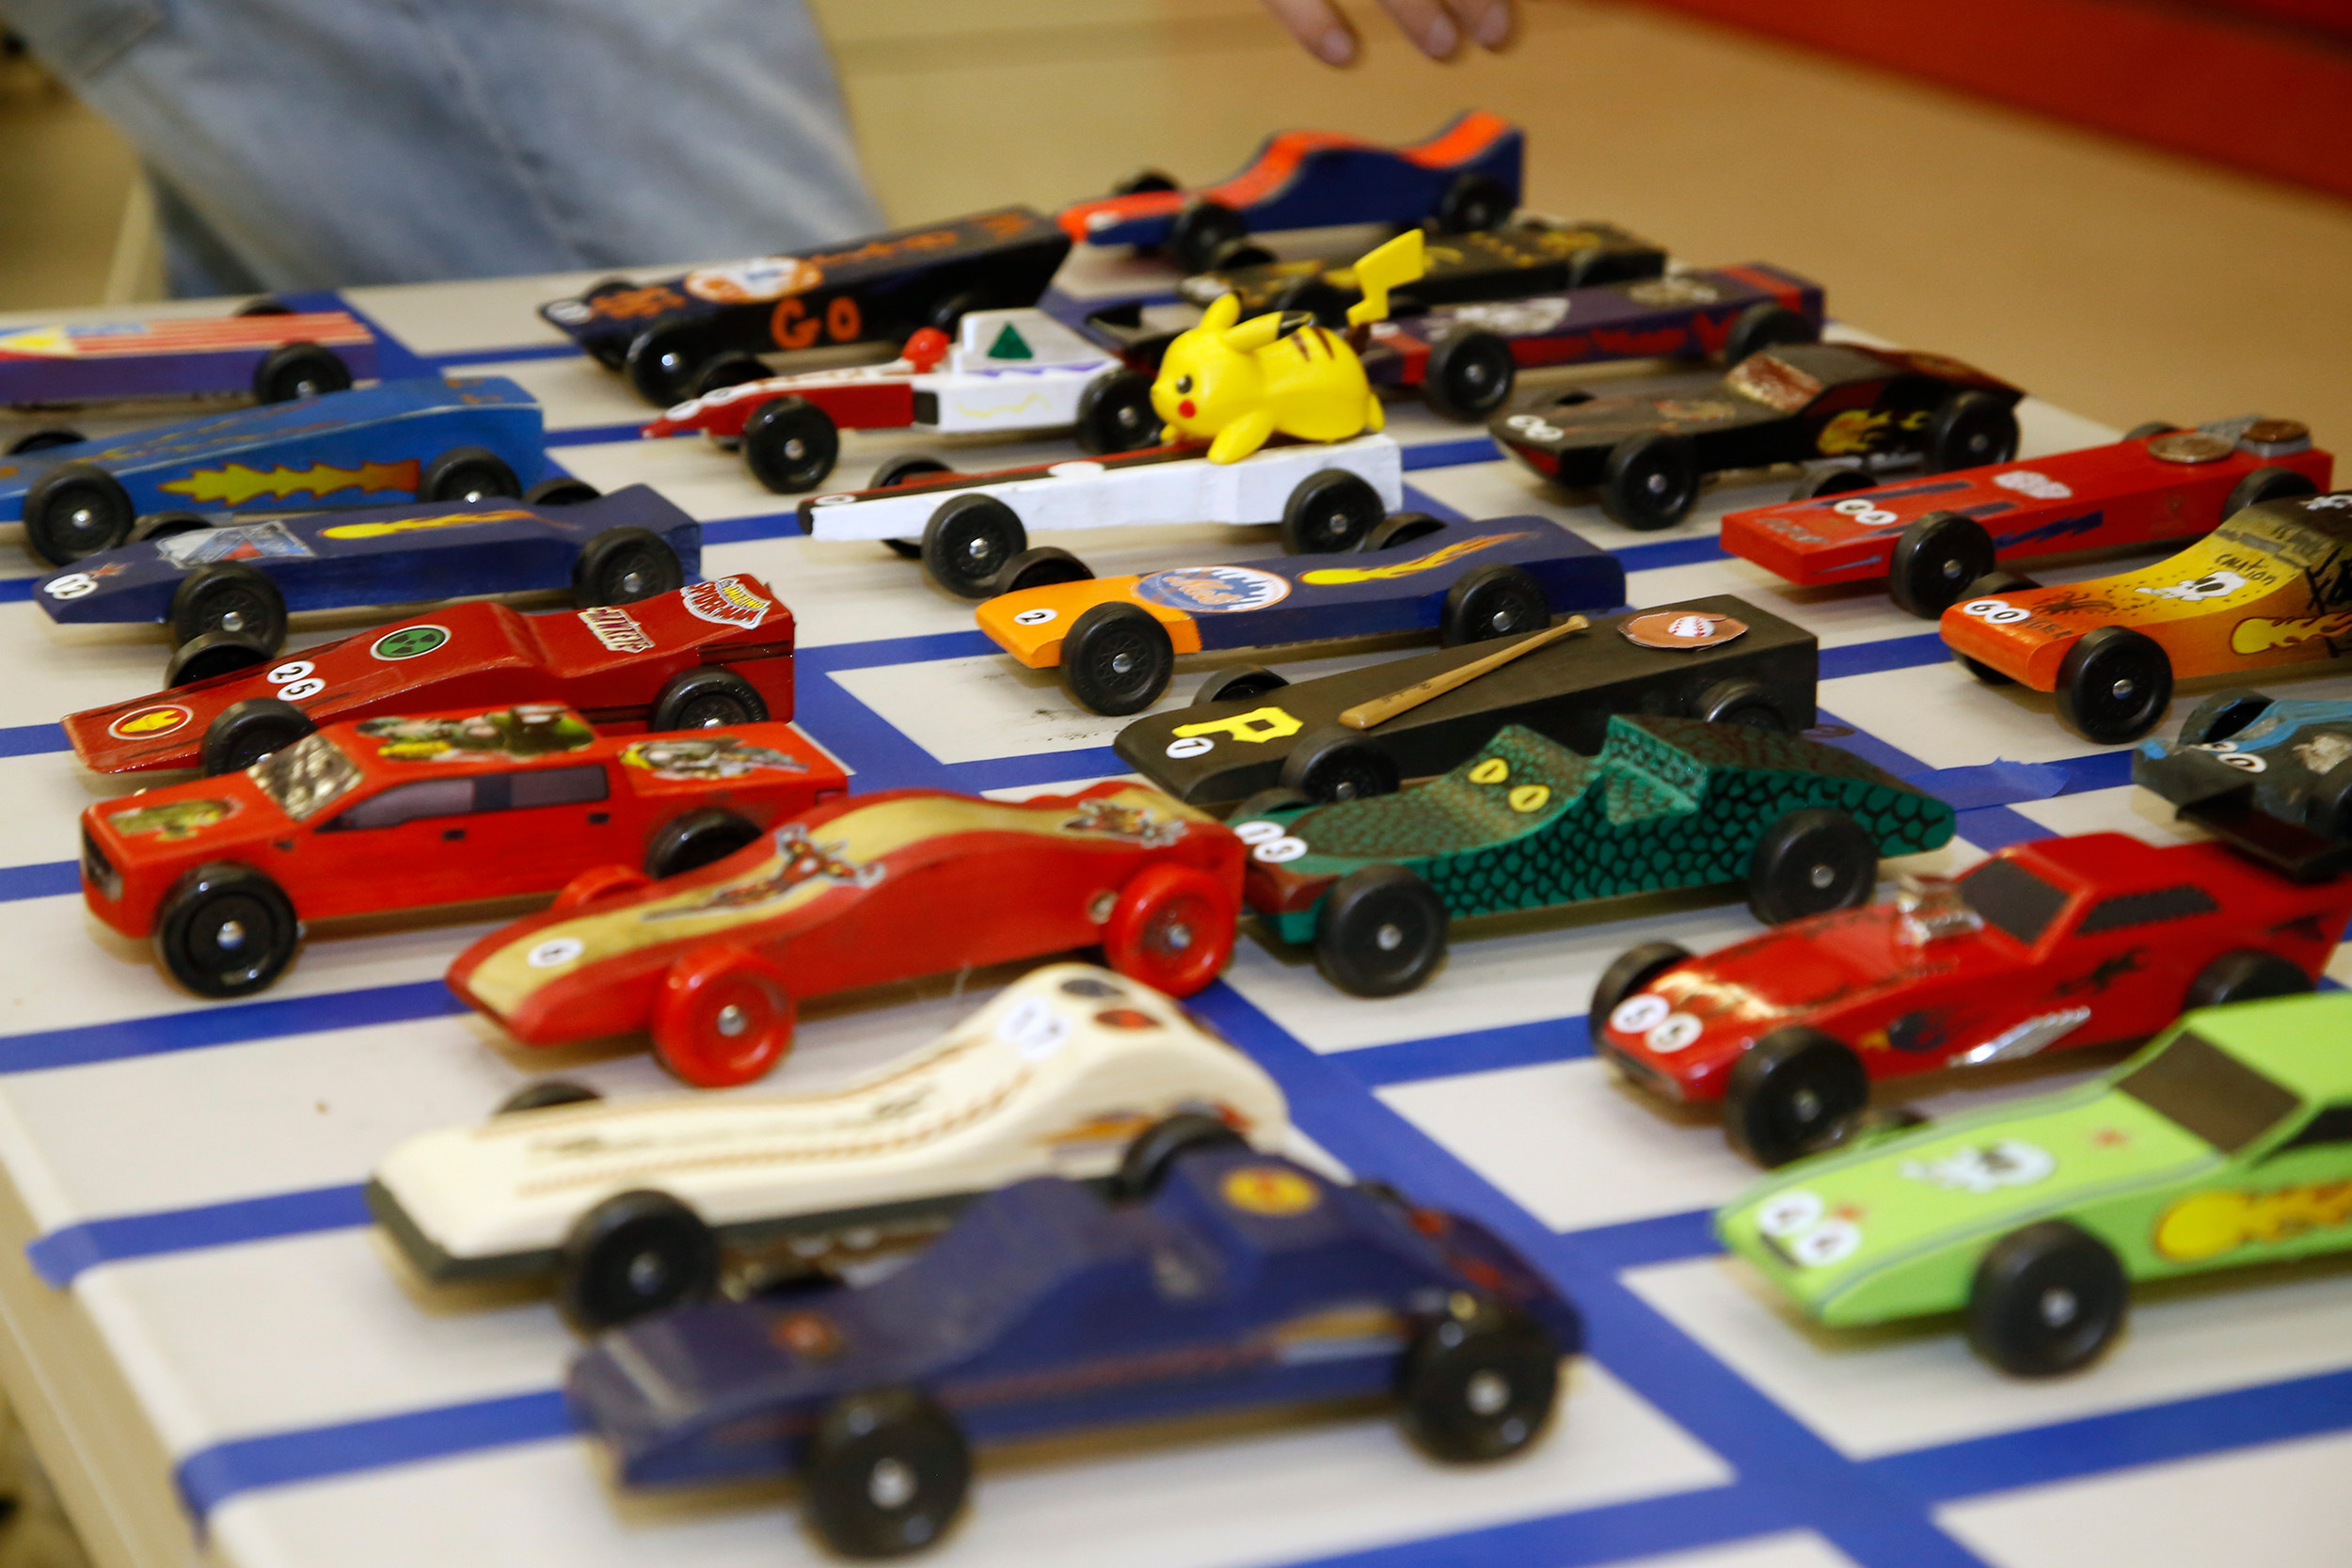 The scouts customized their derby cars, as each varied in shape and style.